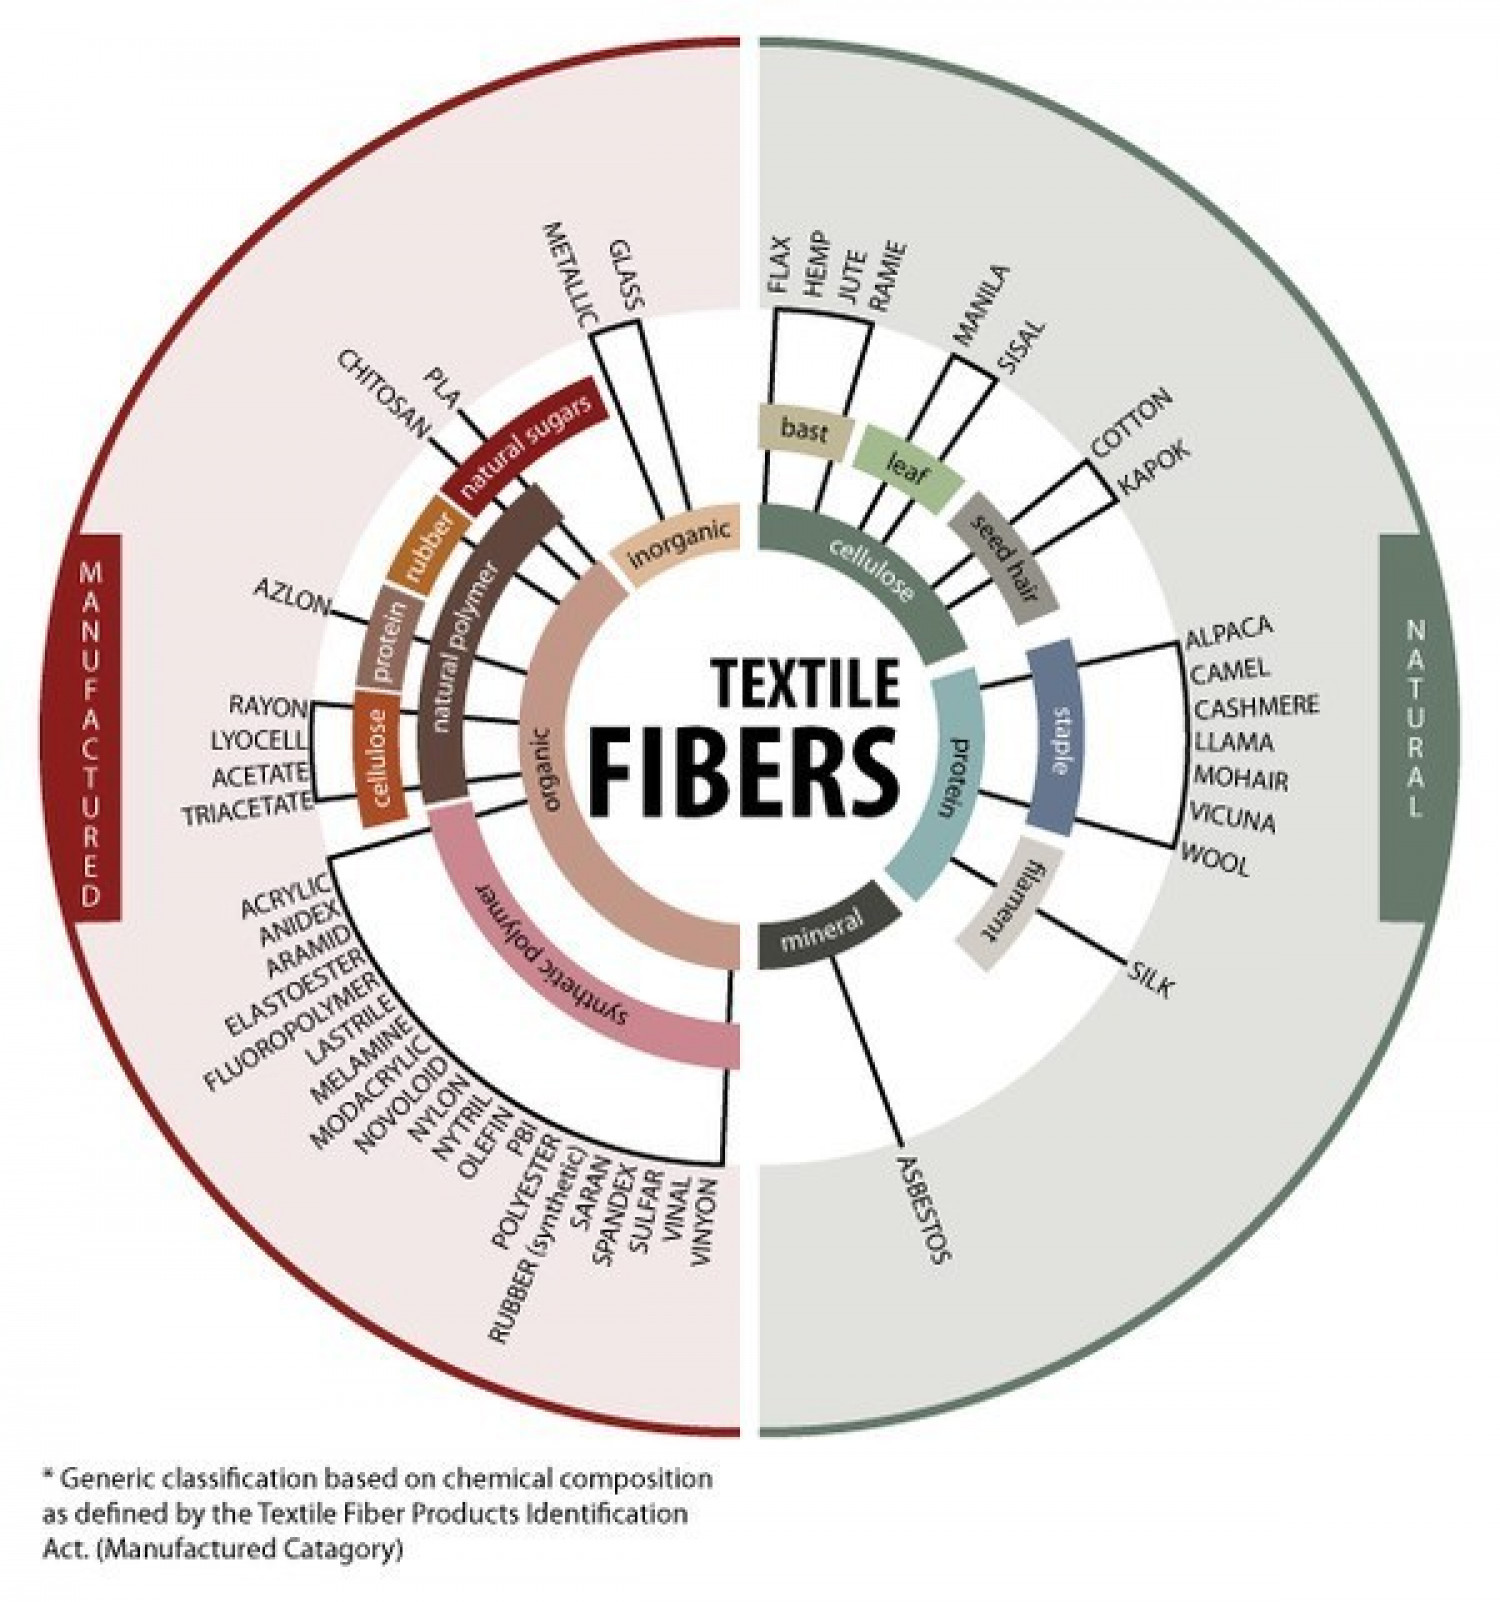 This chart shows the origins of different kinds of fabrics and fibers. Infographic